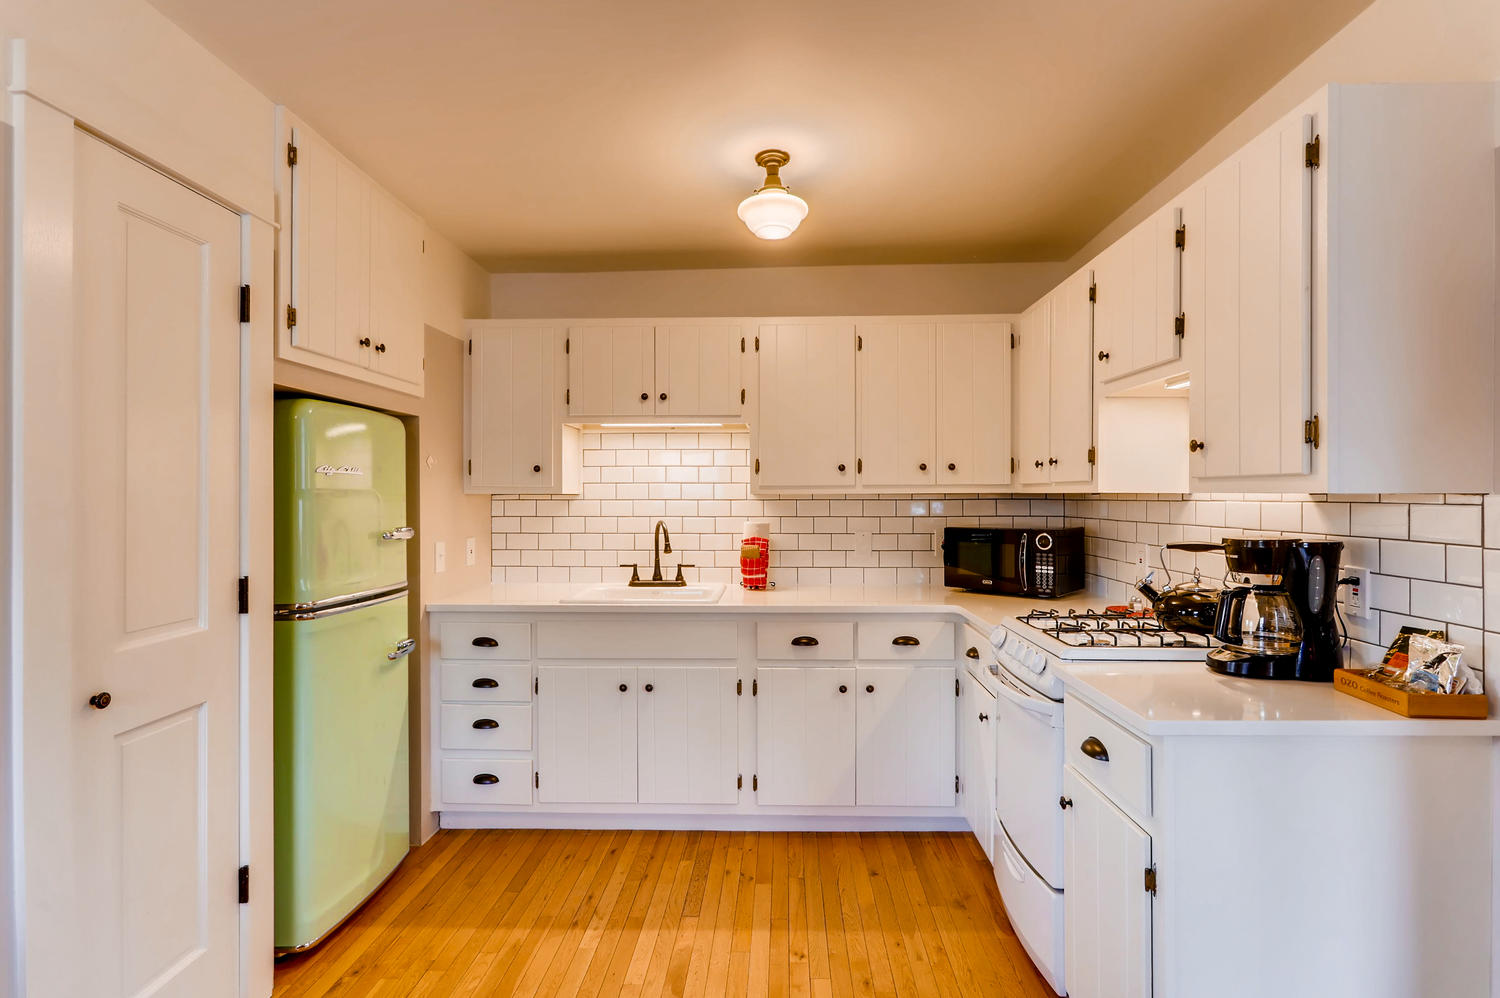 kitchen with white cabinets, tile and green refridgerator